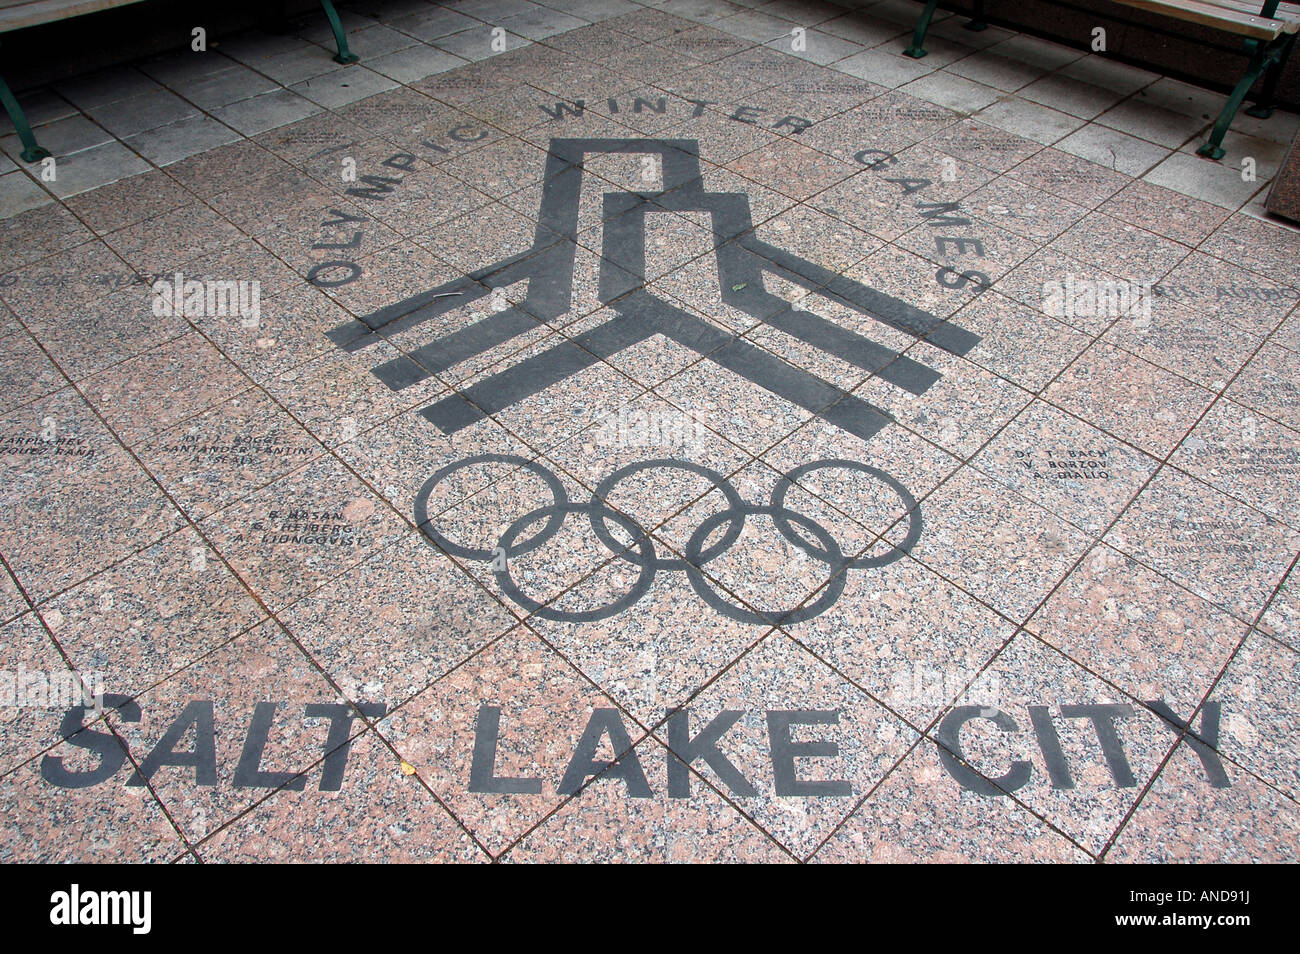 Olympic mural on a pavement, Salt Lake City, USA - Stock Image